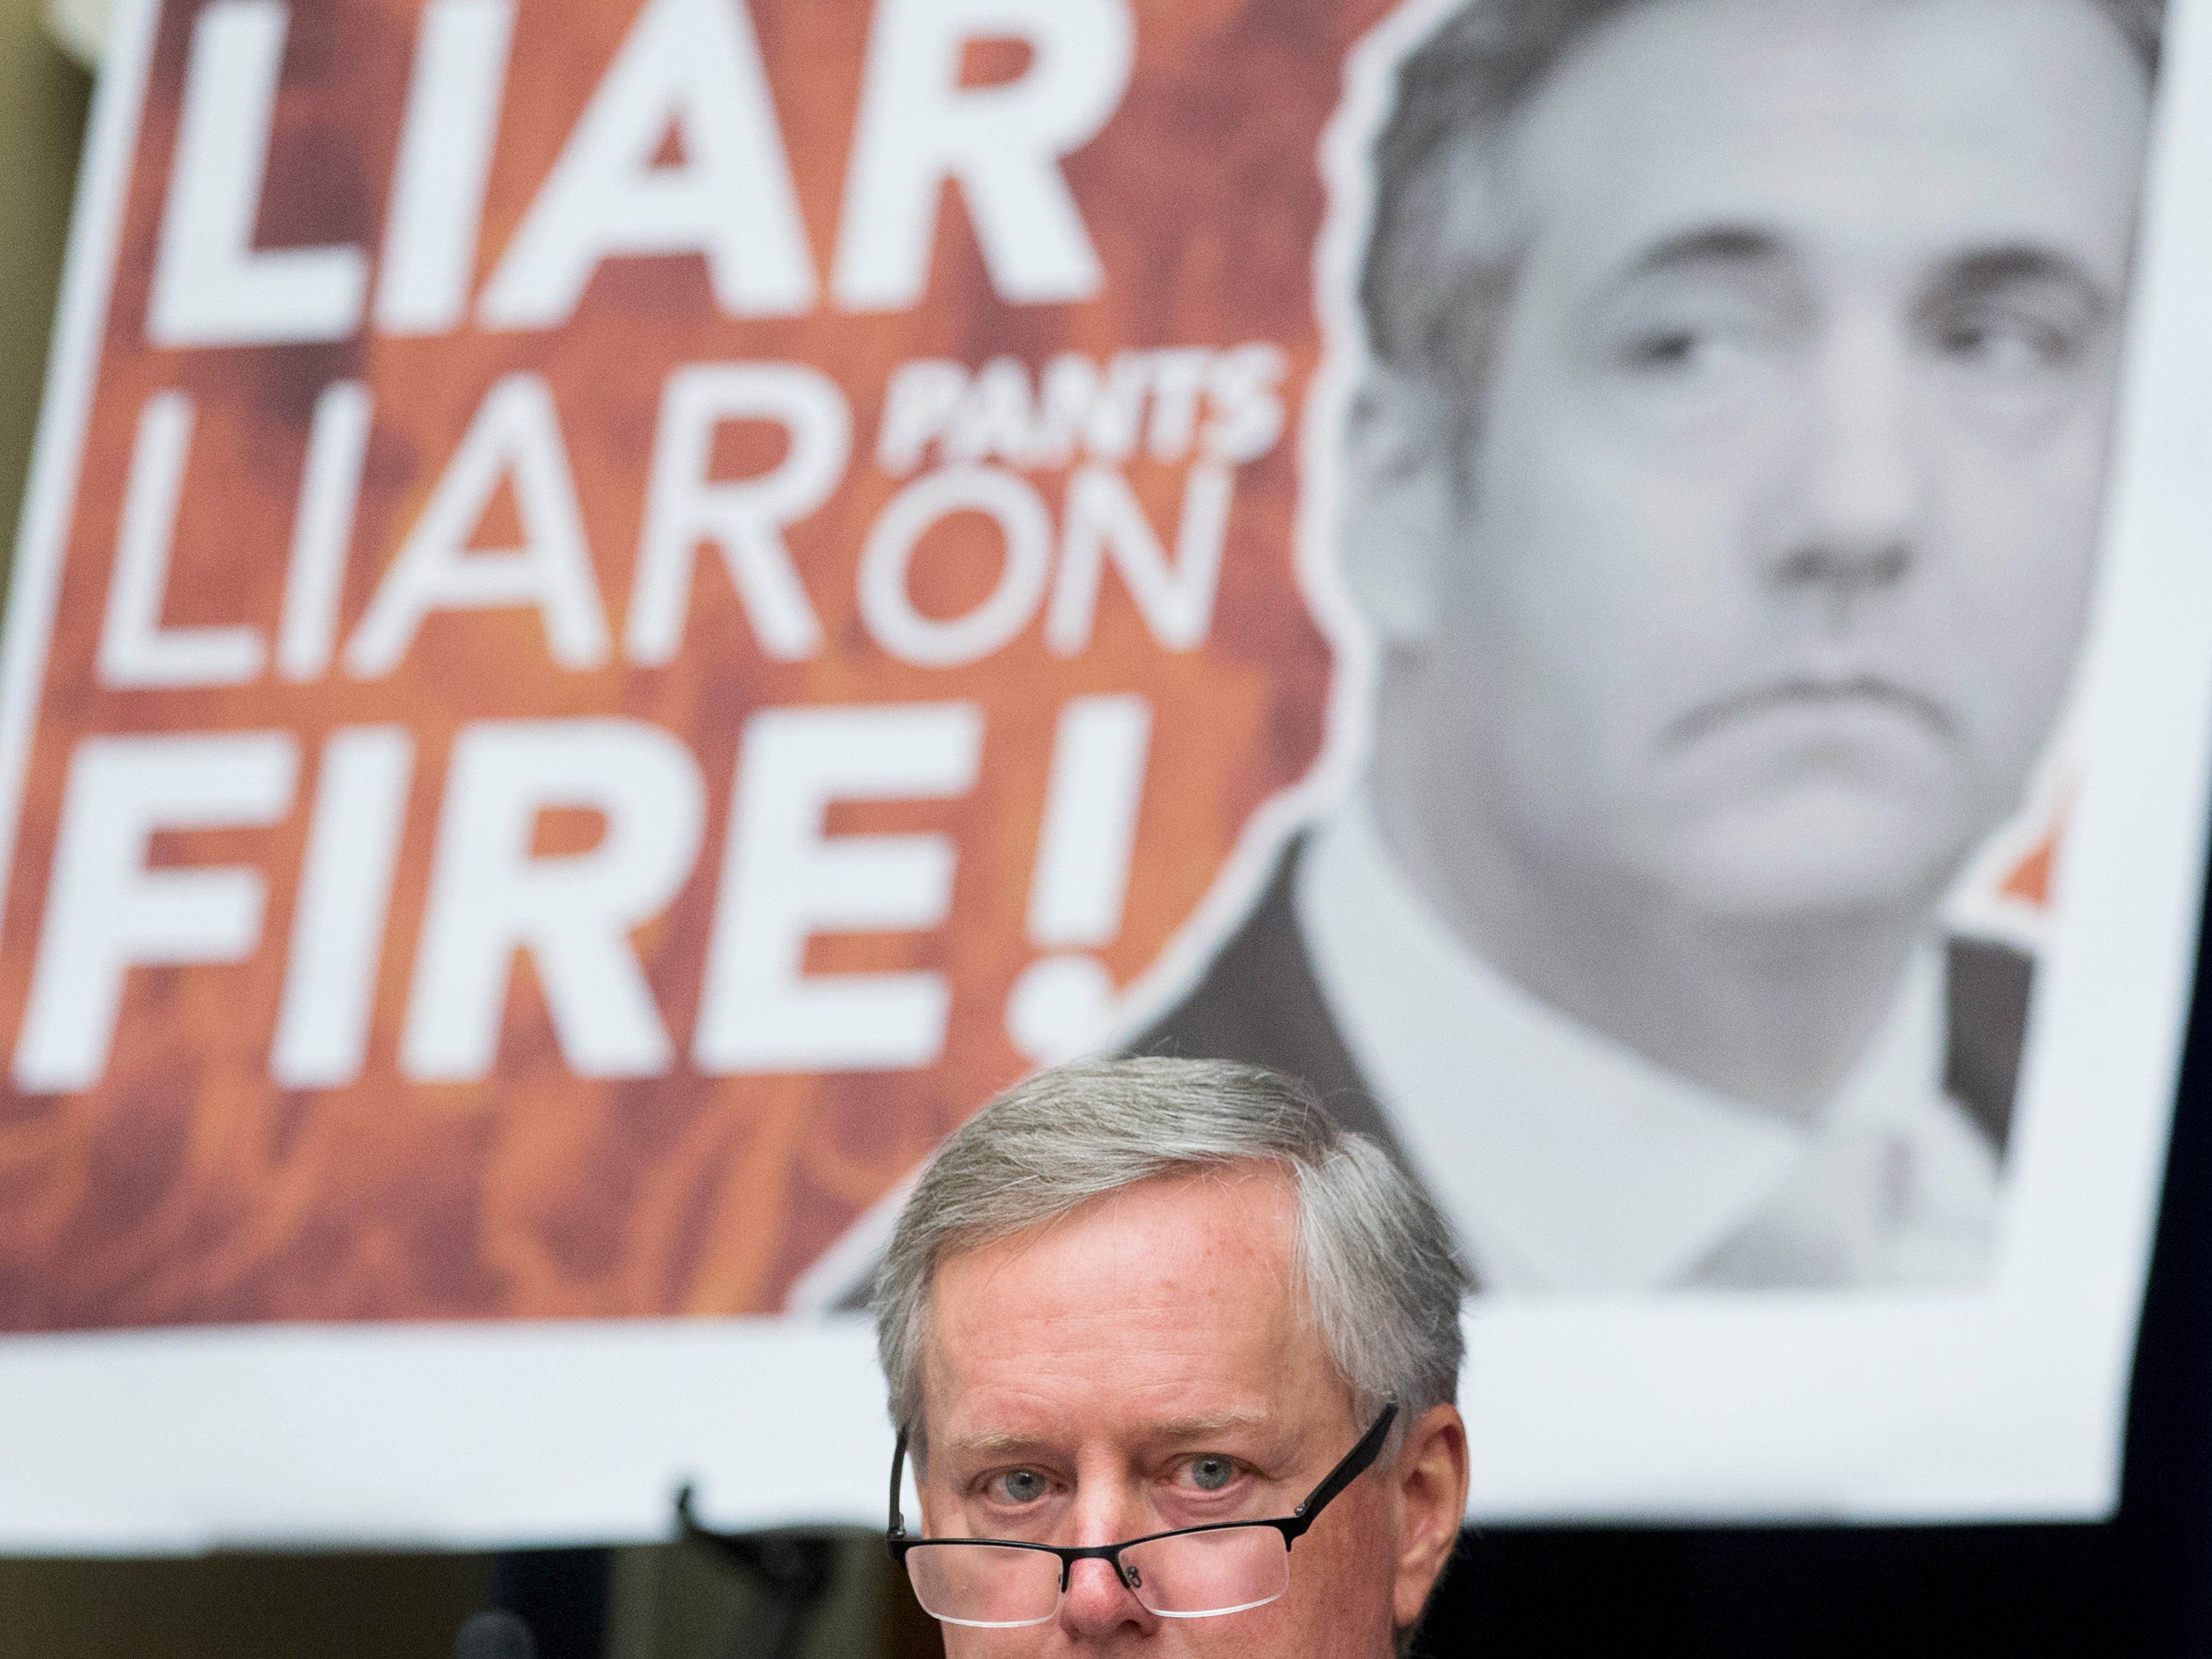 A sign depicts Michael Cohen, former attorney to President Donald Trump, behind Rep. Mark Meadows, R-N.C. during Cohen's testimony before the House Oversight and Reform Committee.